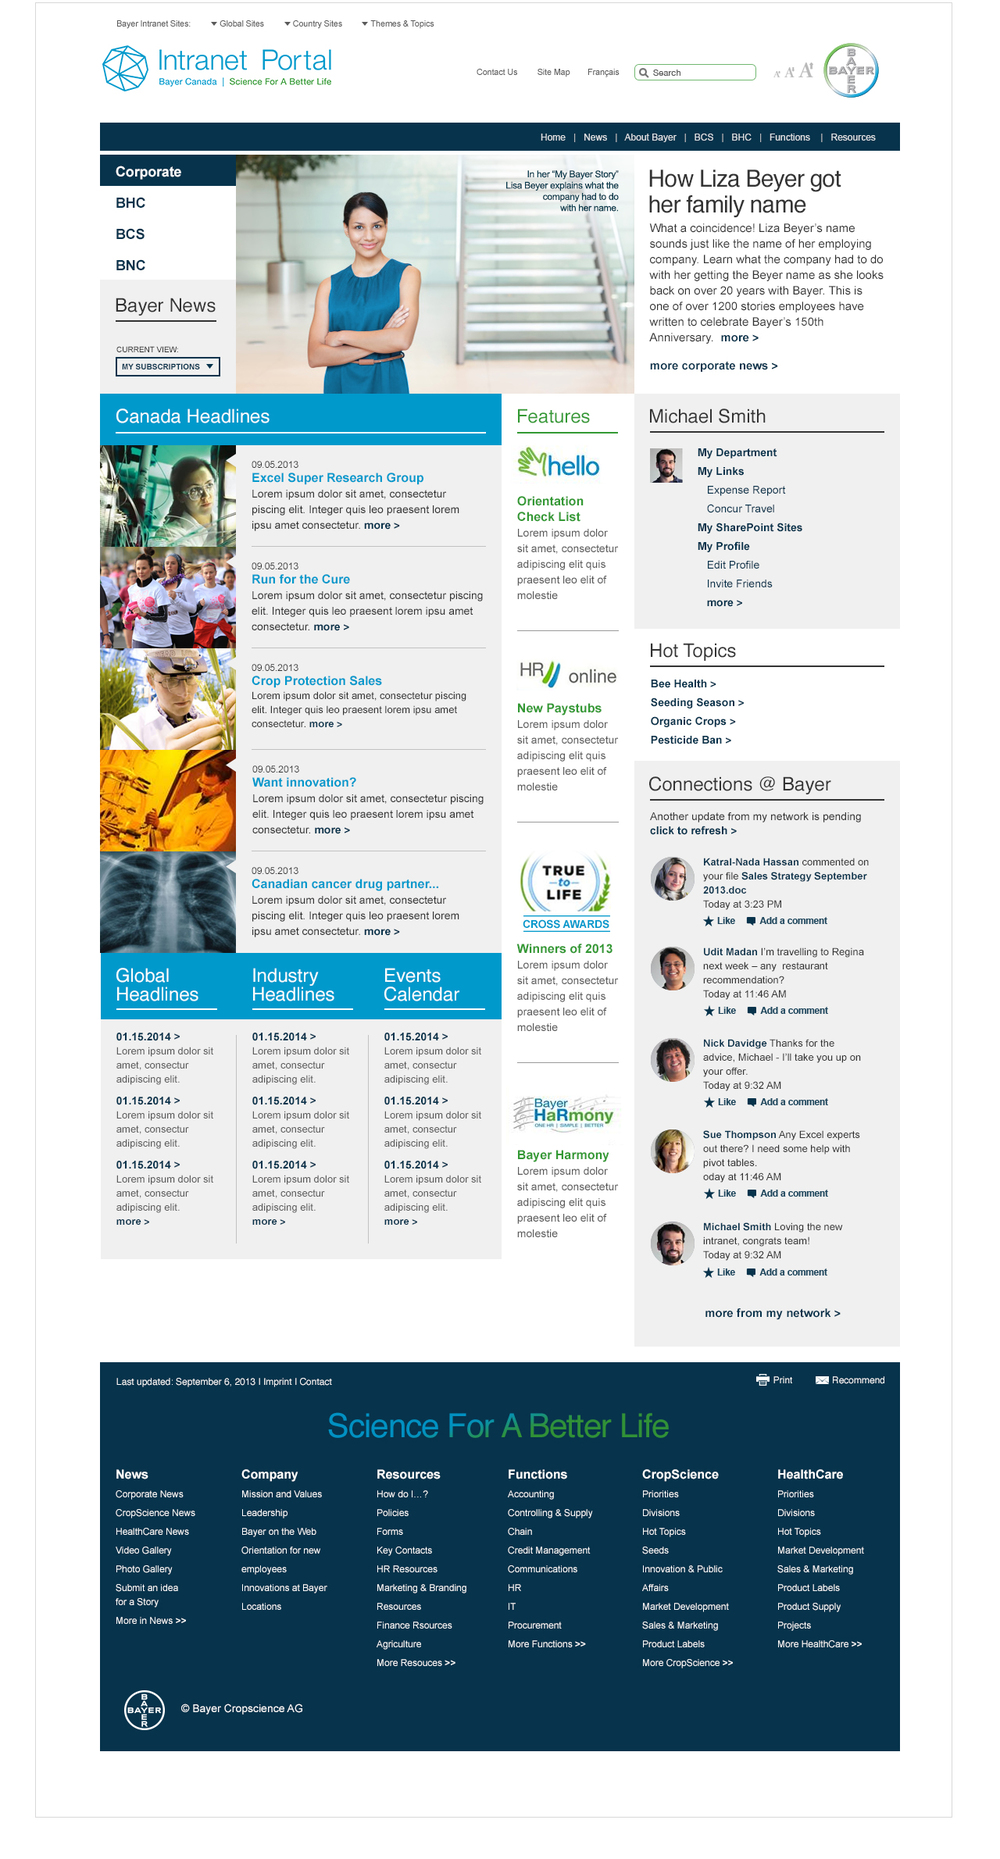 bayer_intranet_home-1.jpg